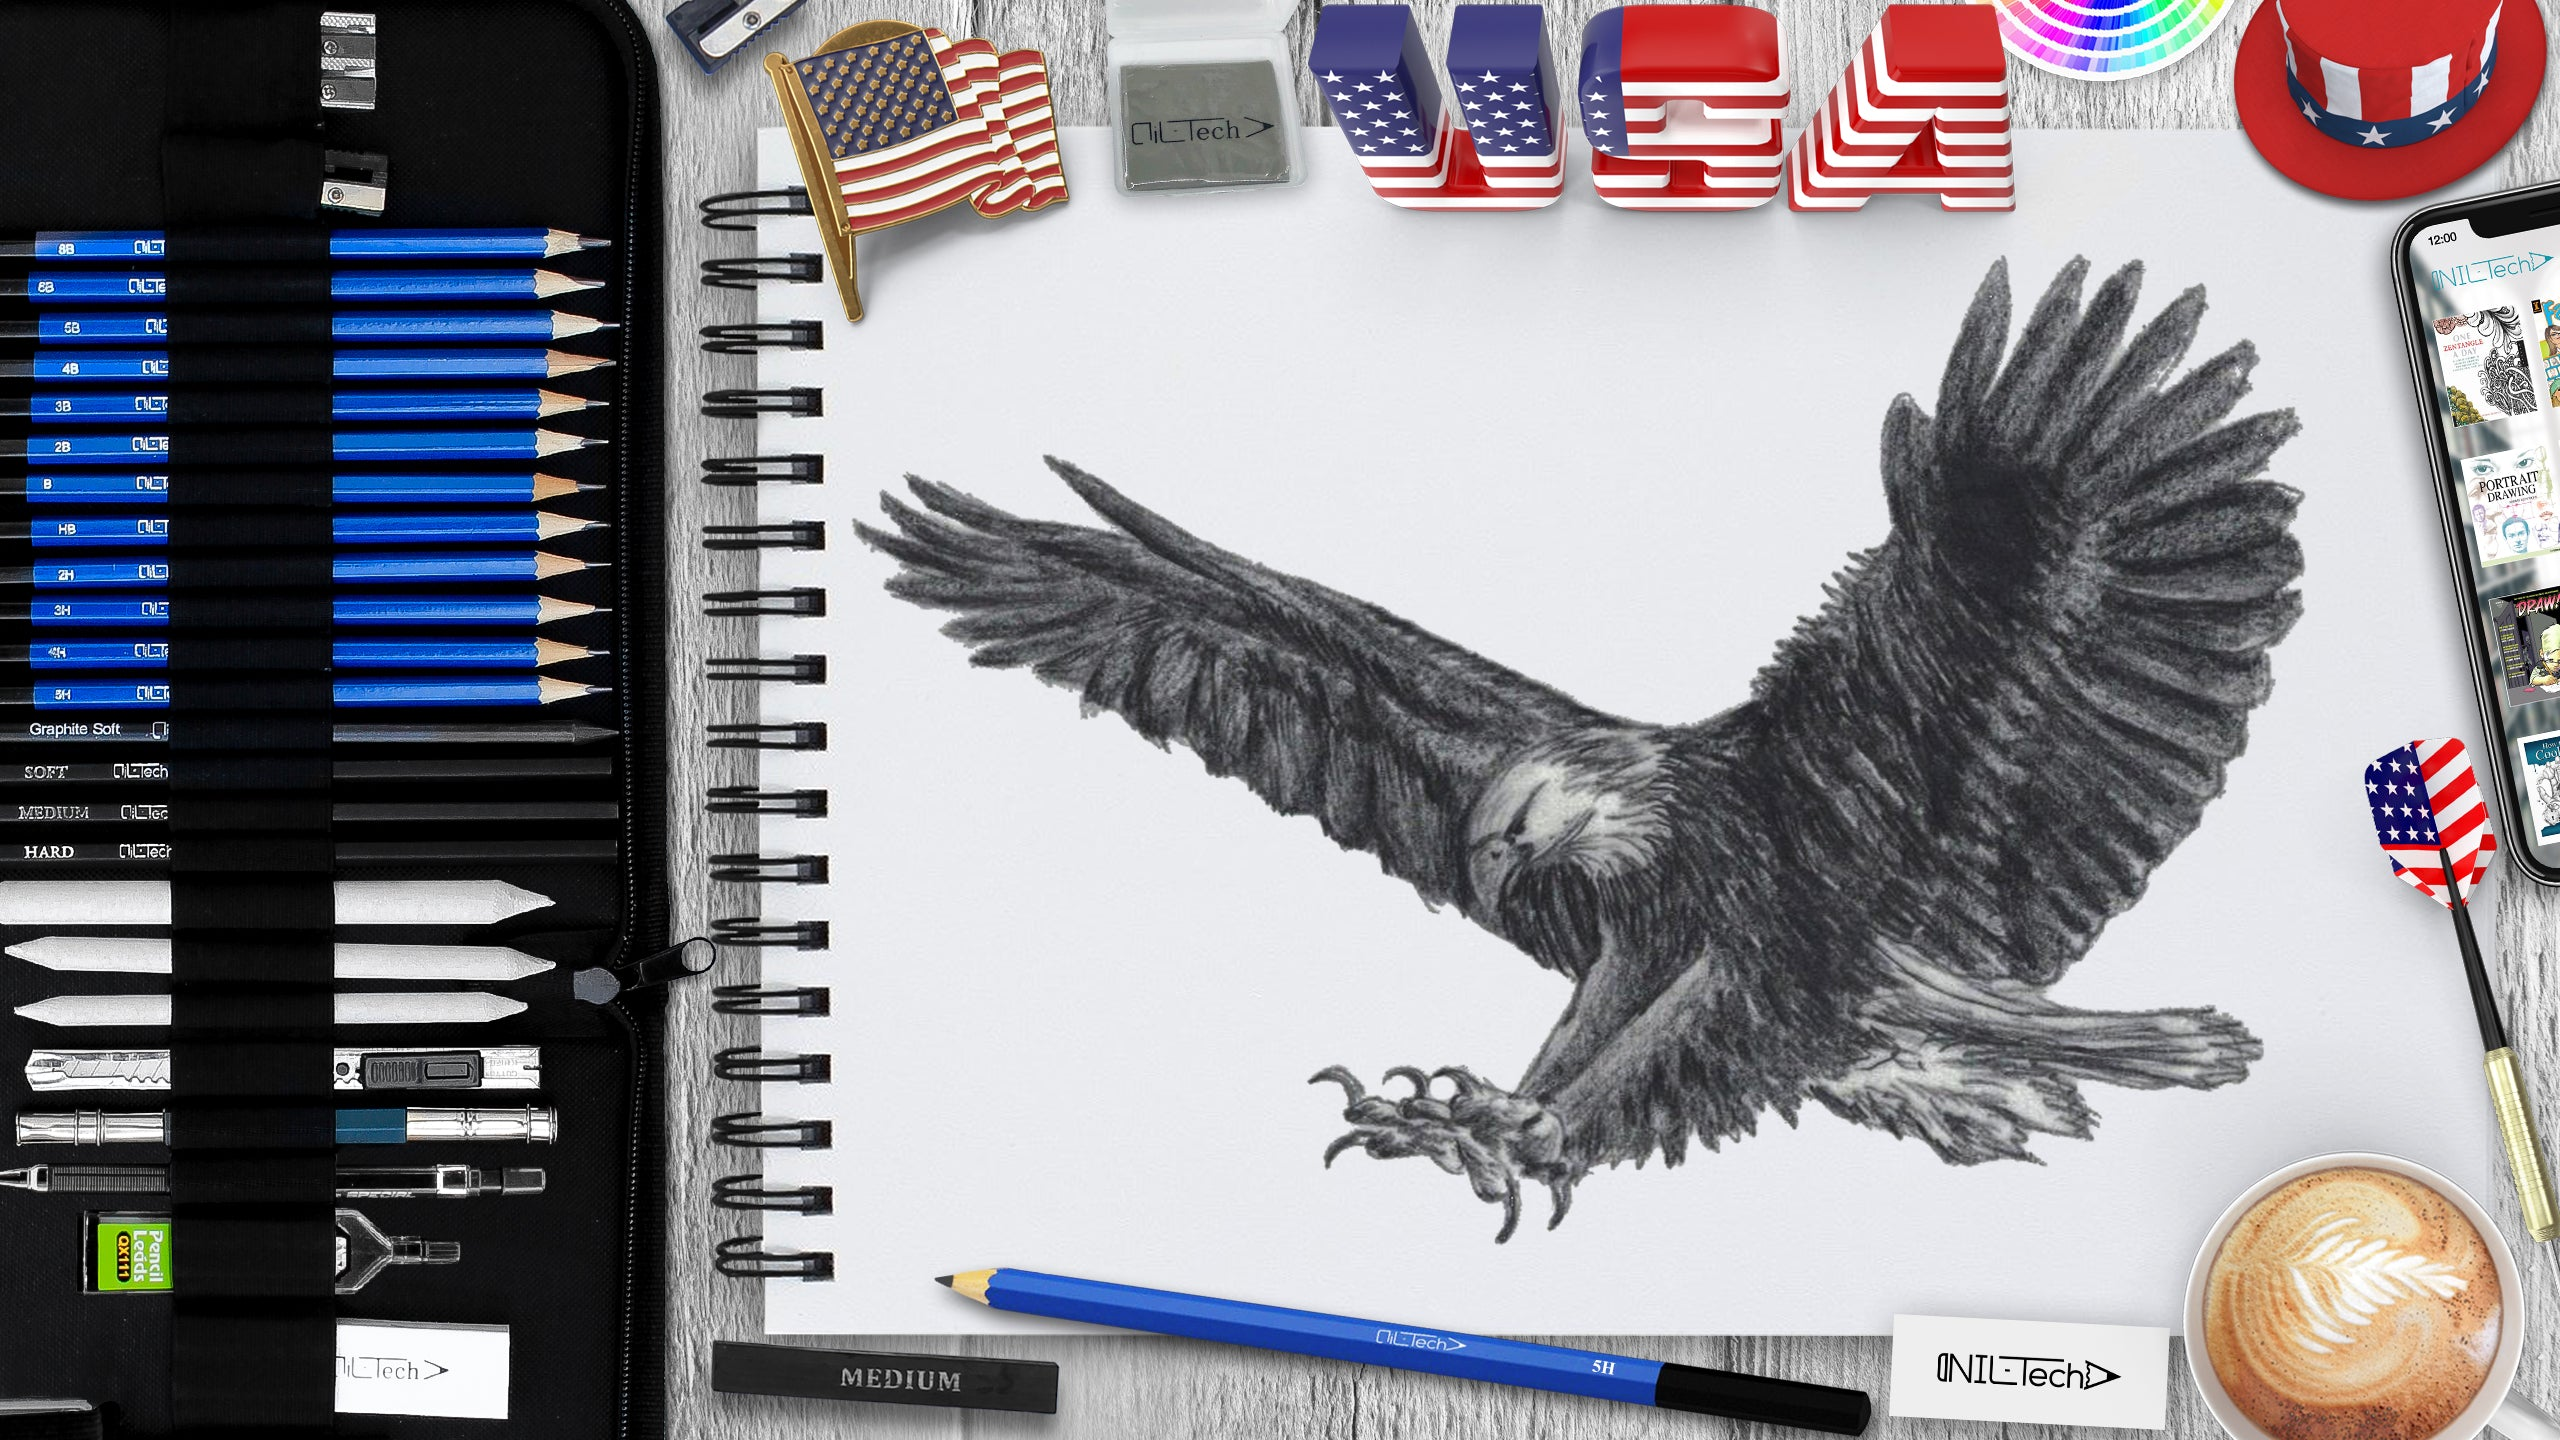 How to draw a bird, Bald eagle step by step